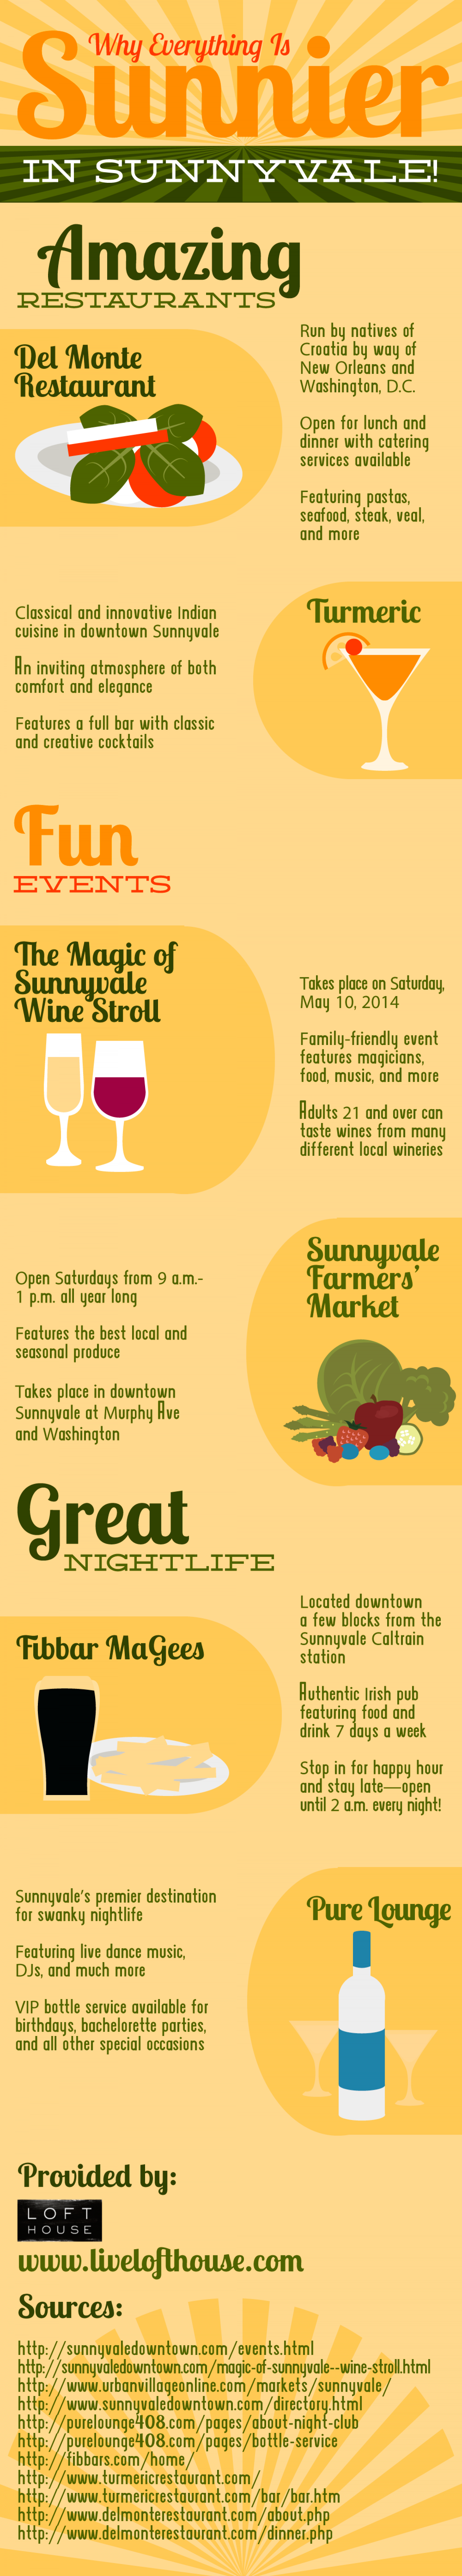 Why Everything is Sunnier in Sunnyvale Infographic